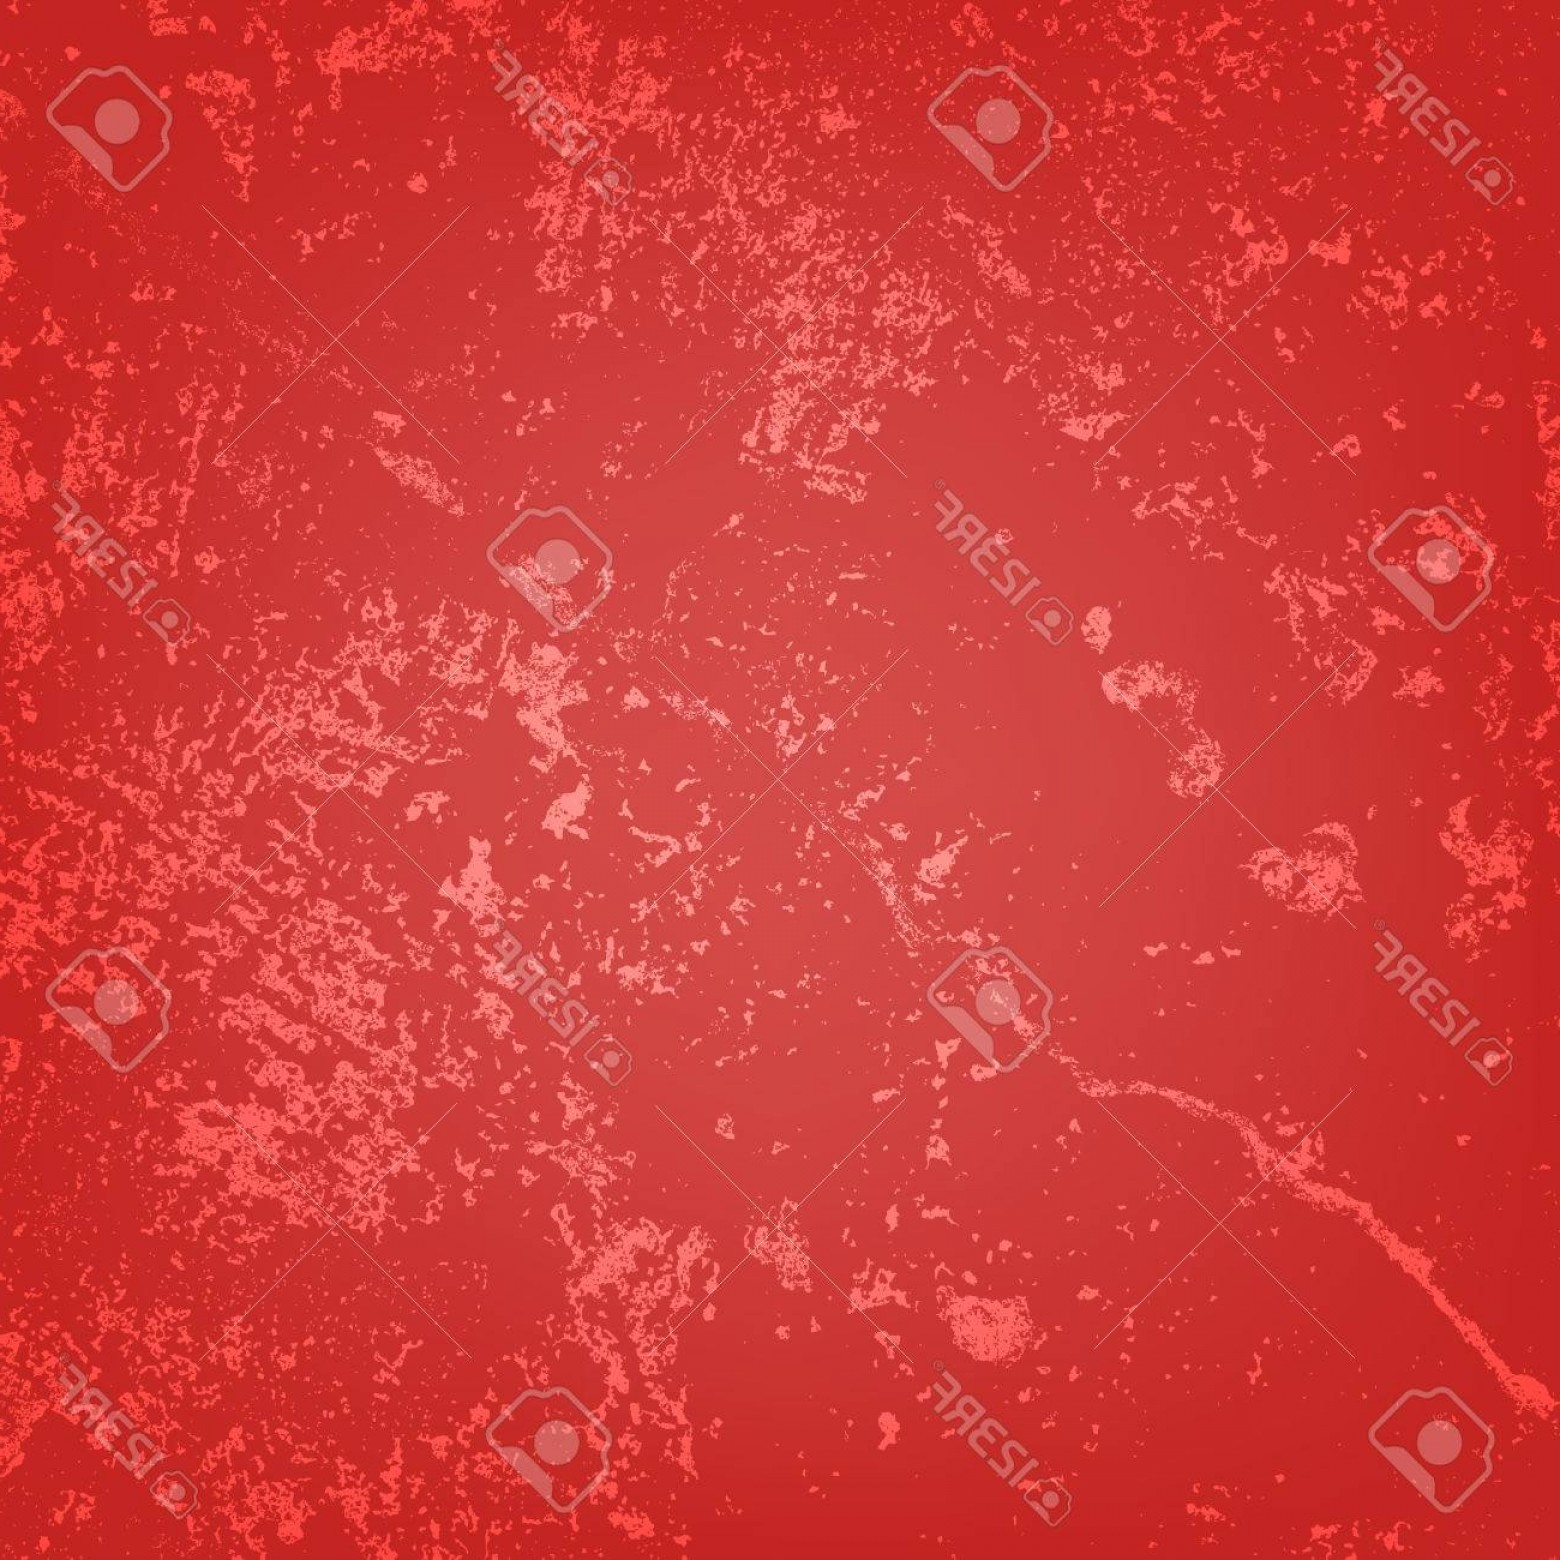 Distressed Red Background Vector: Photostock Vector Grunge Distressed Texture Red Empty Background